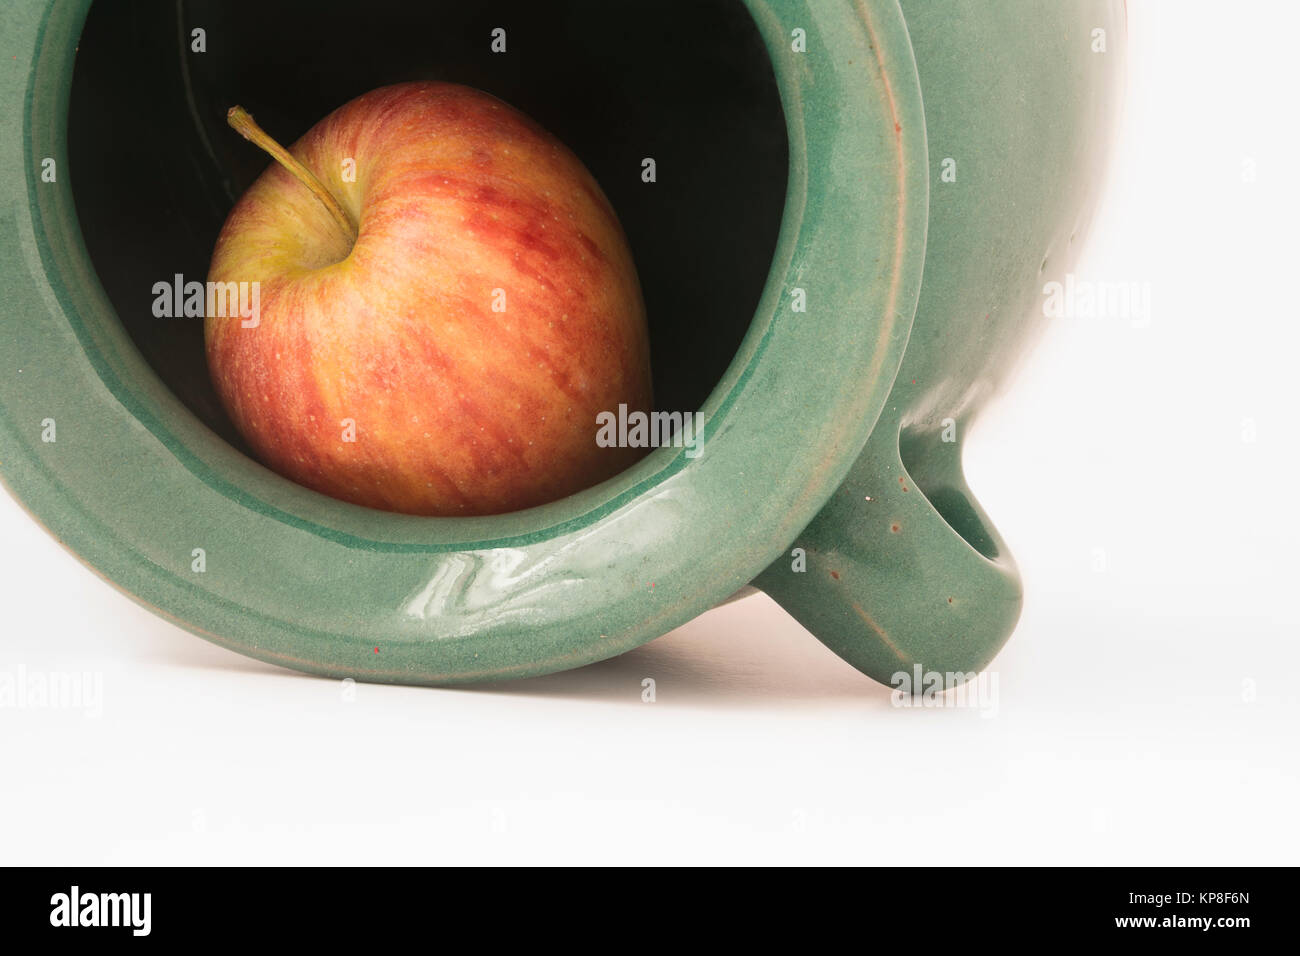 close up view of a red apple inside the greenish earthen jar - Stock Image